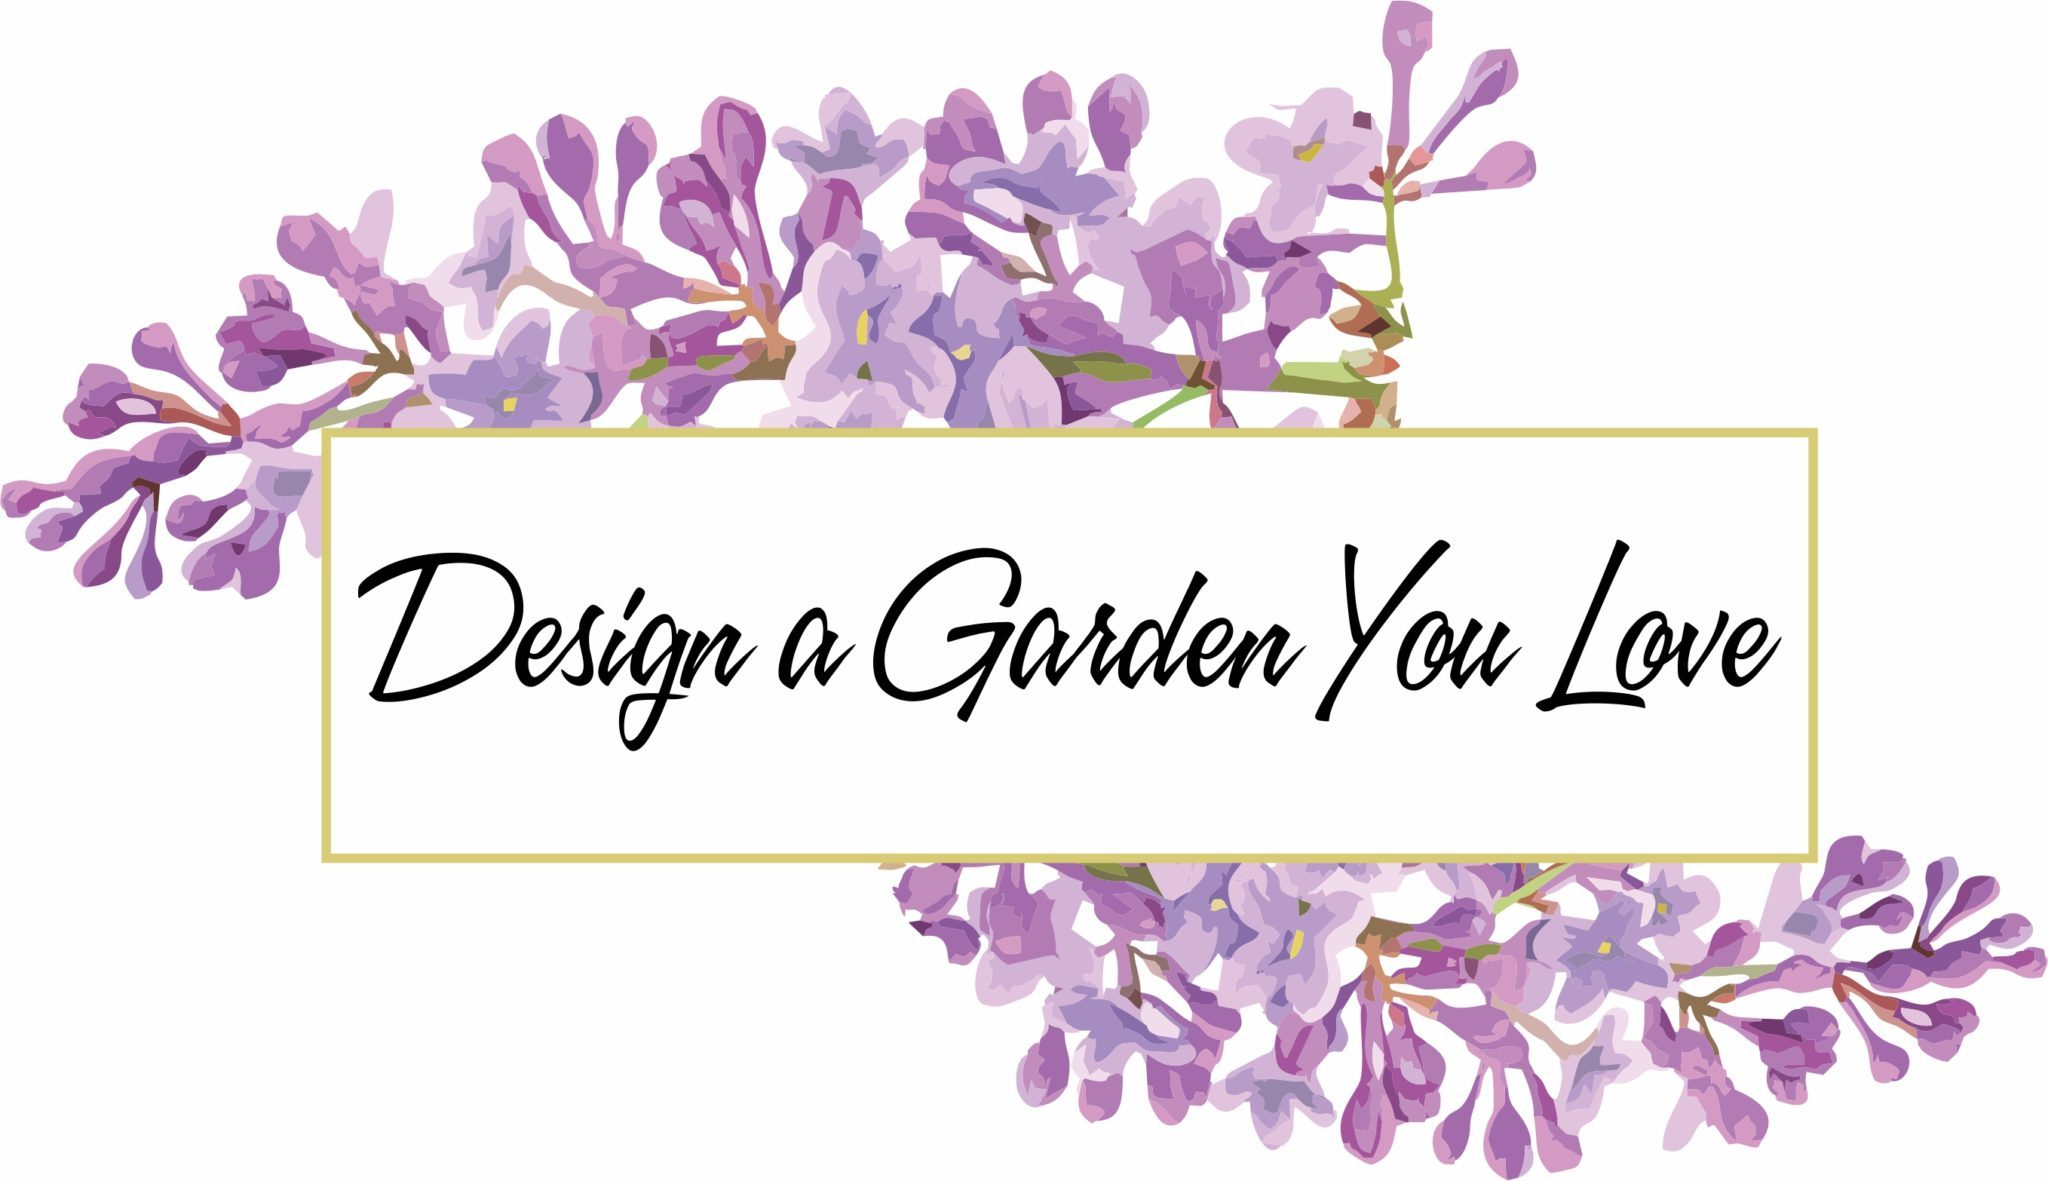 Inspiration for Your Home and Garden